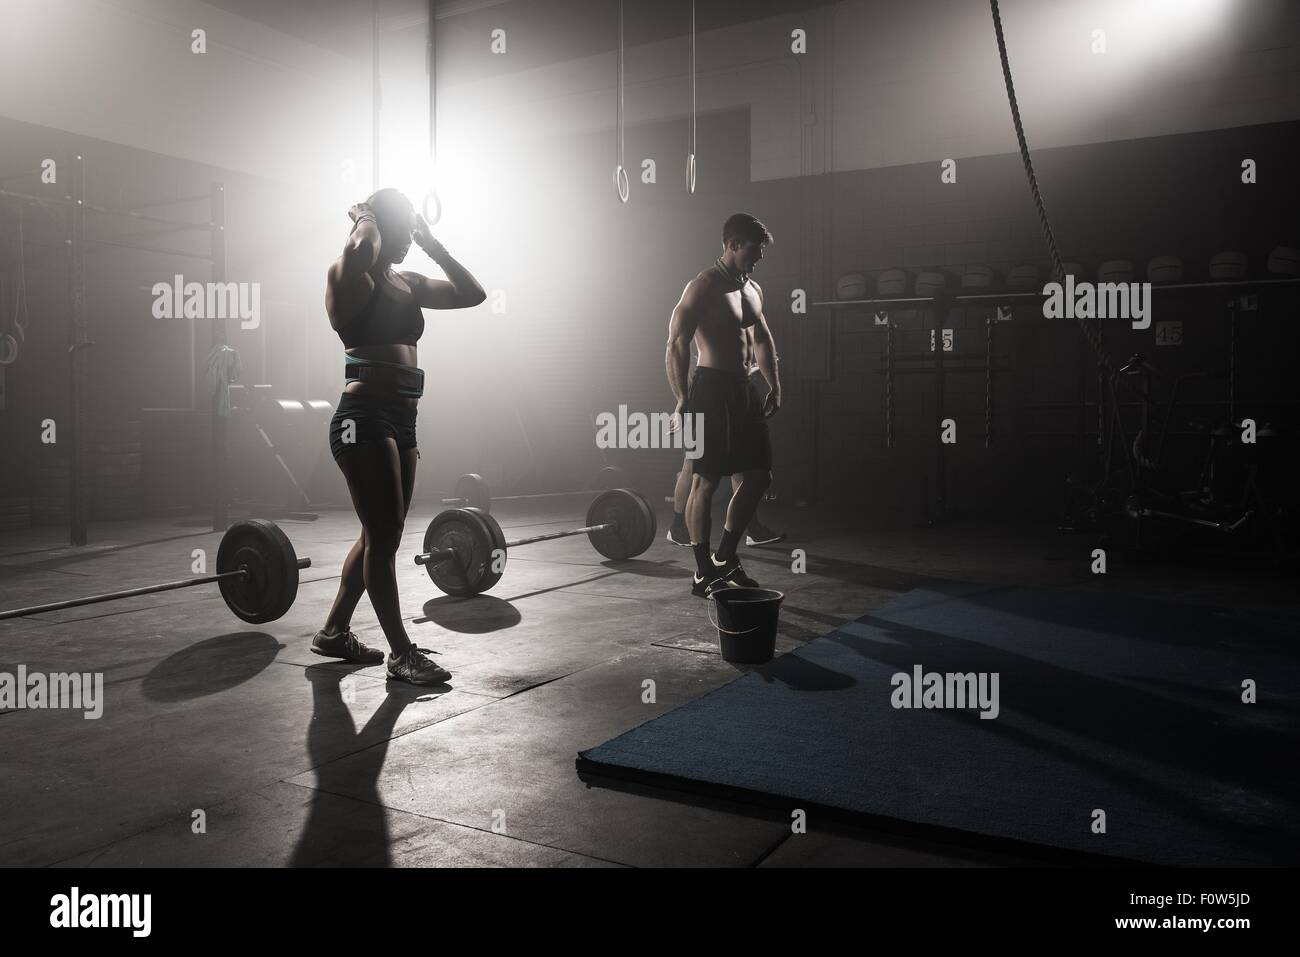 Group of people working out in gym - Stock Image